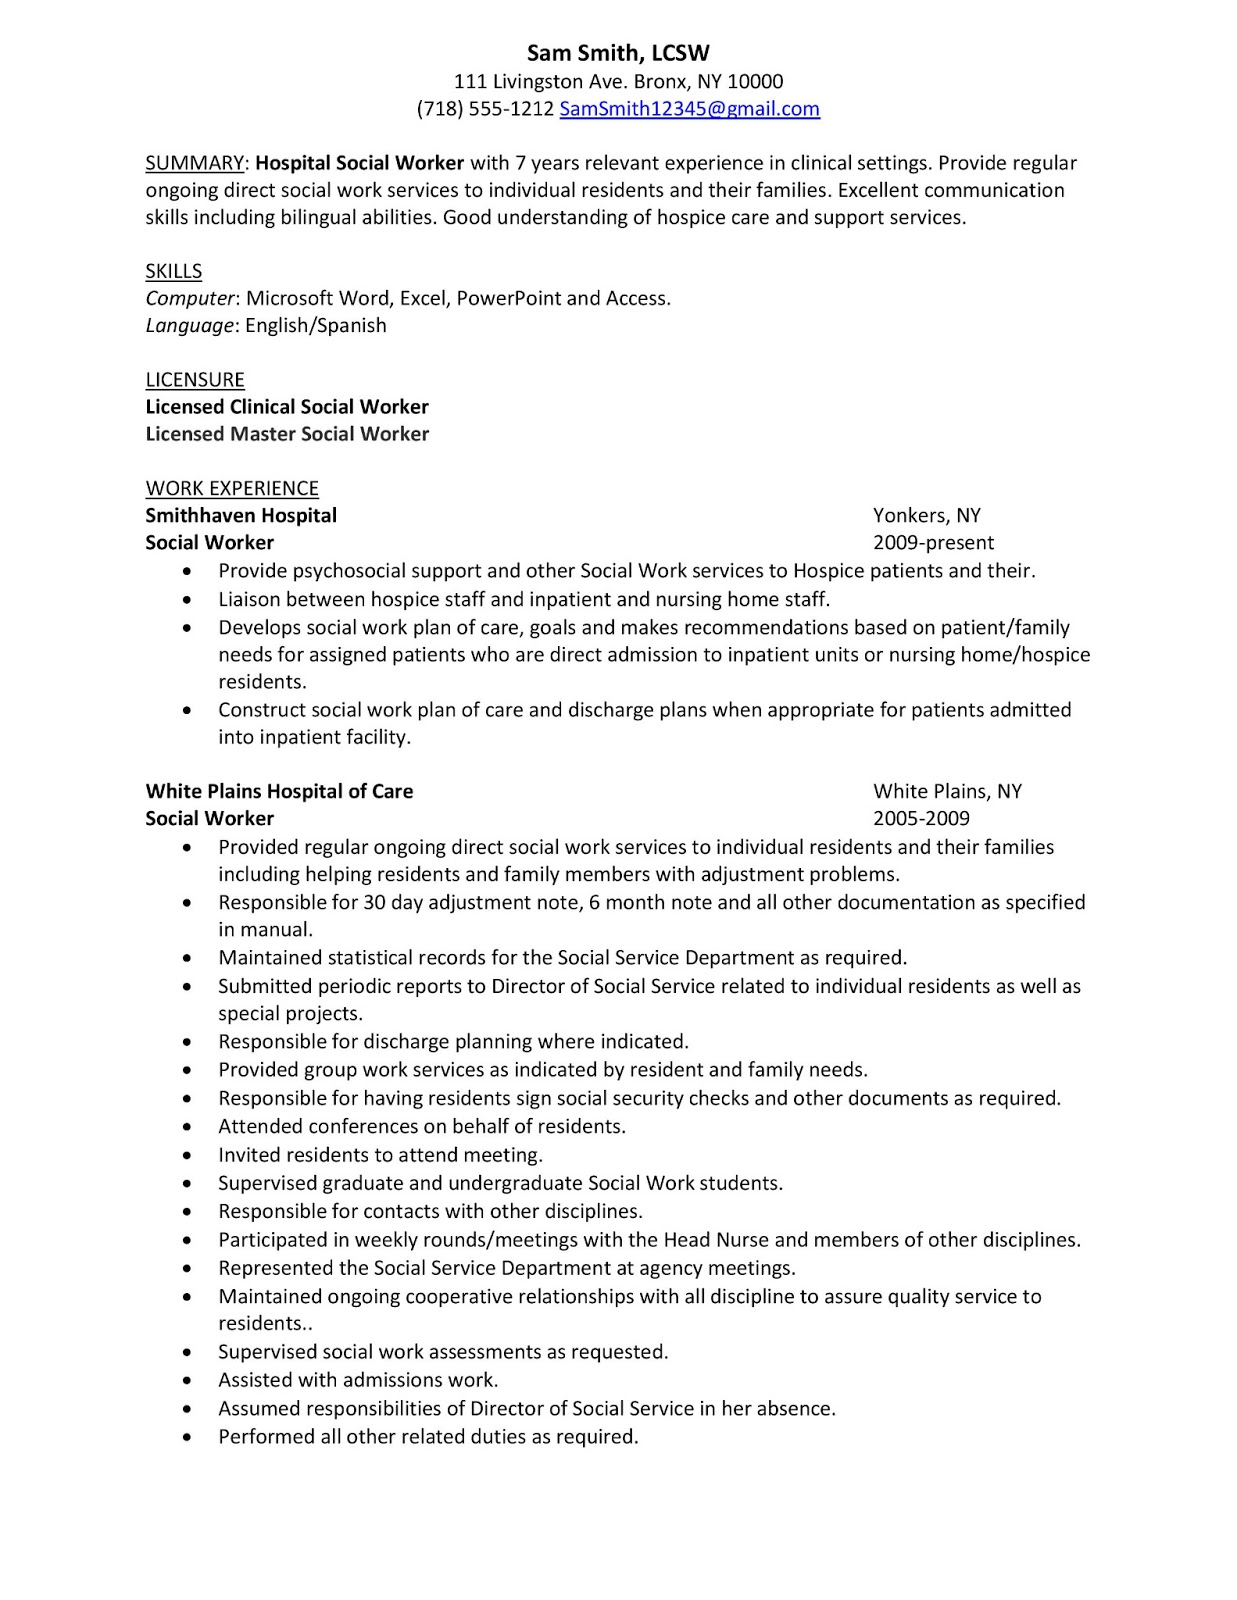 sample resume hospital social worker - Resume For Hospital Job